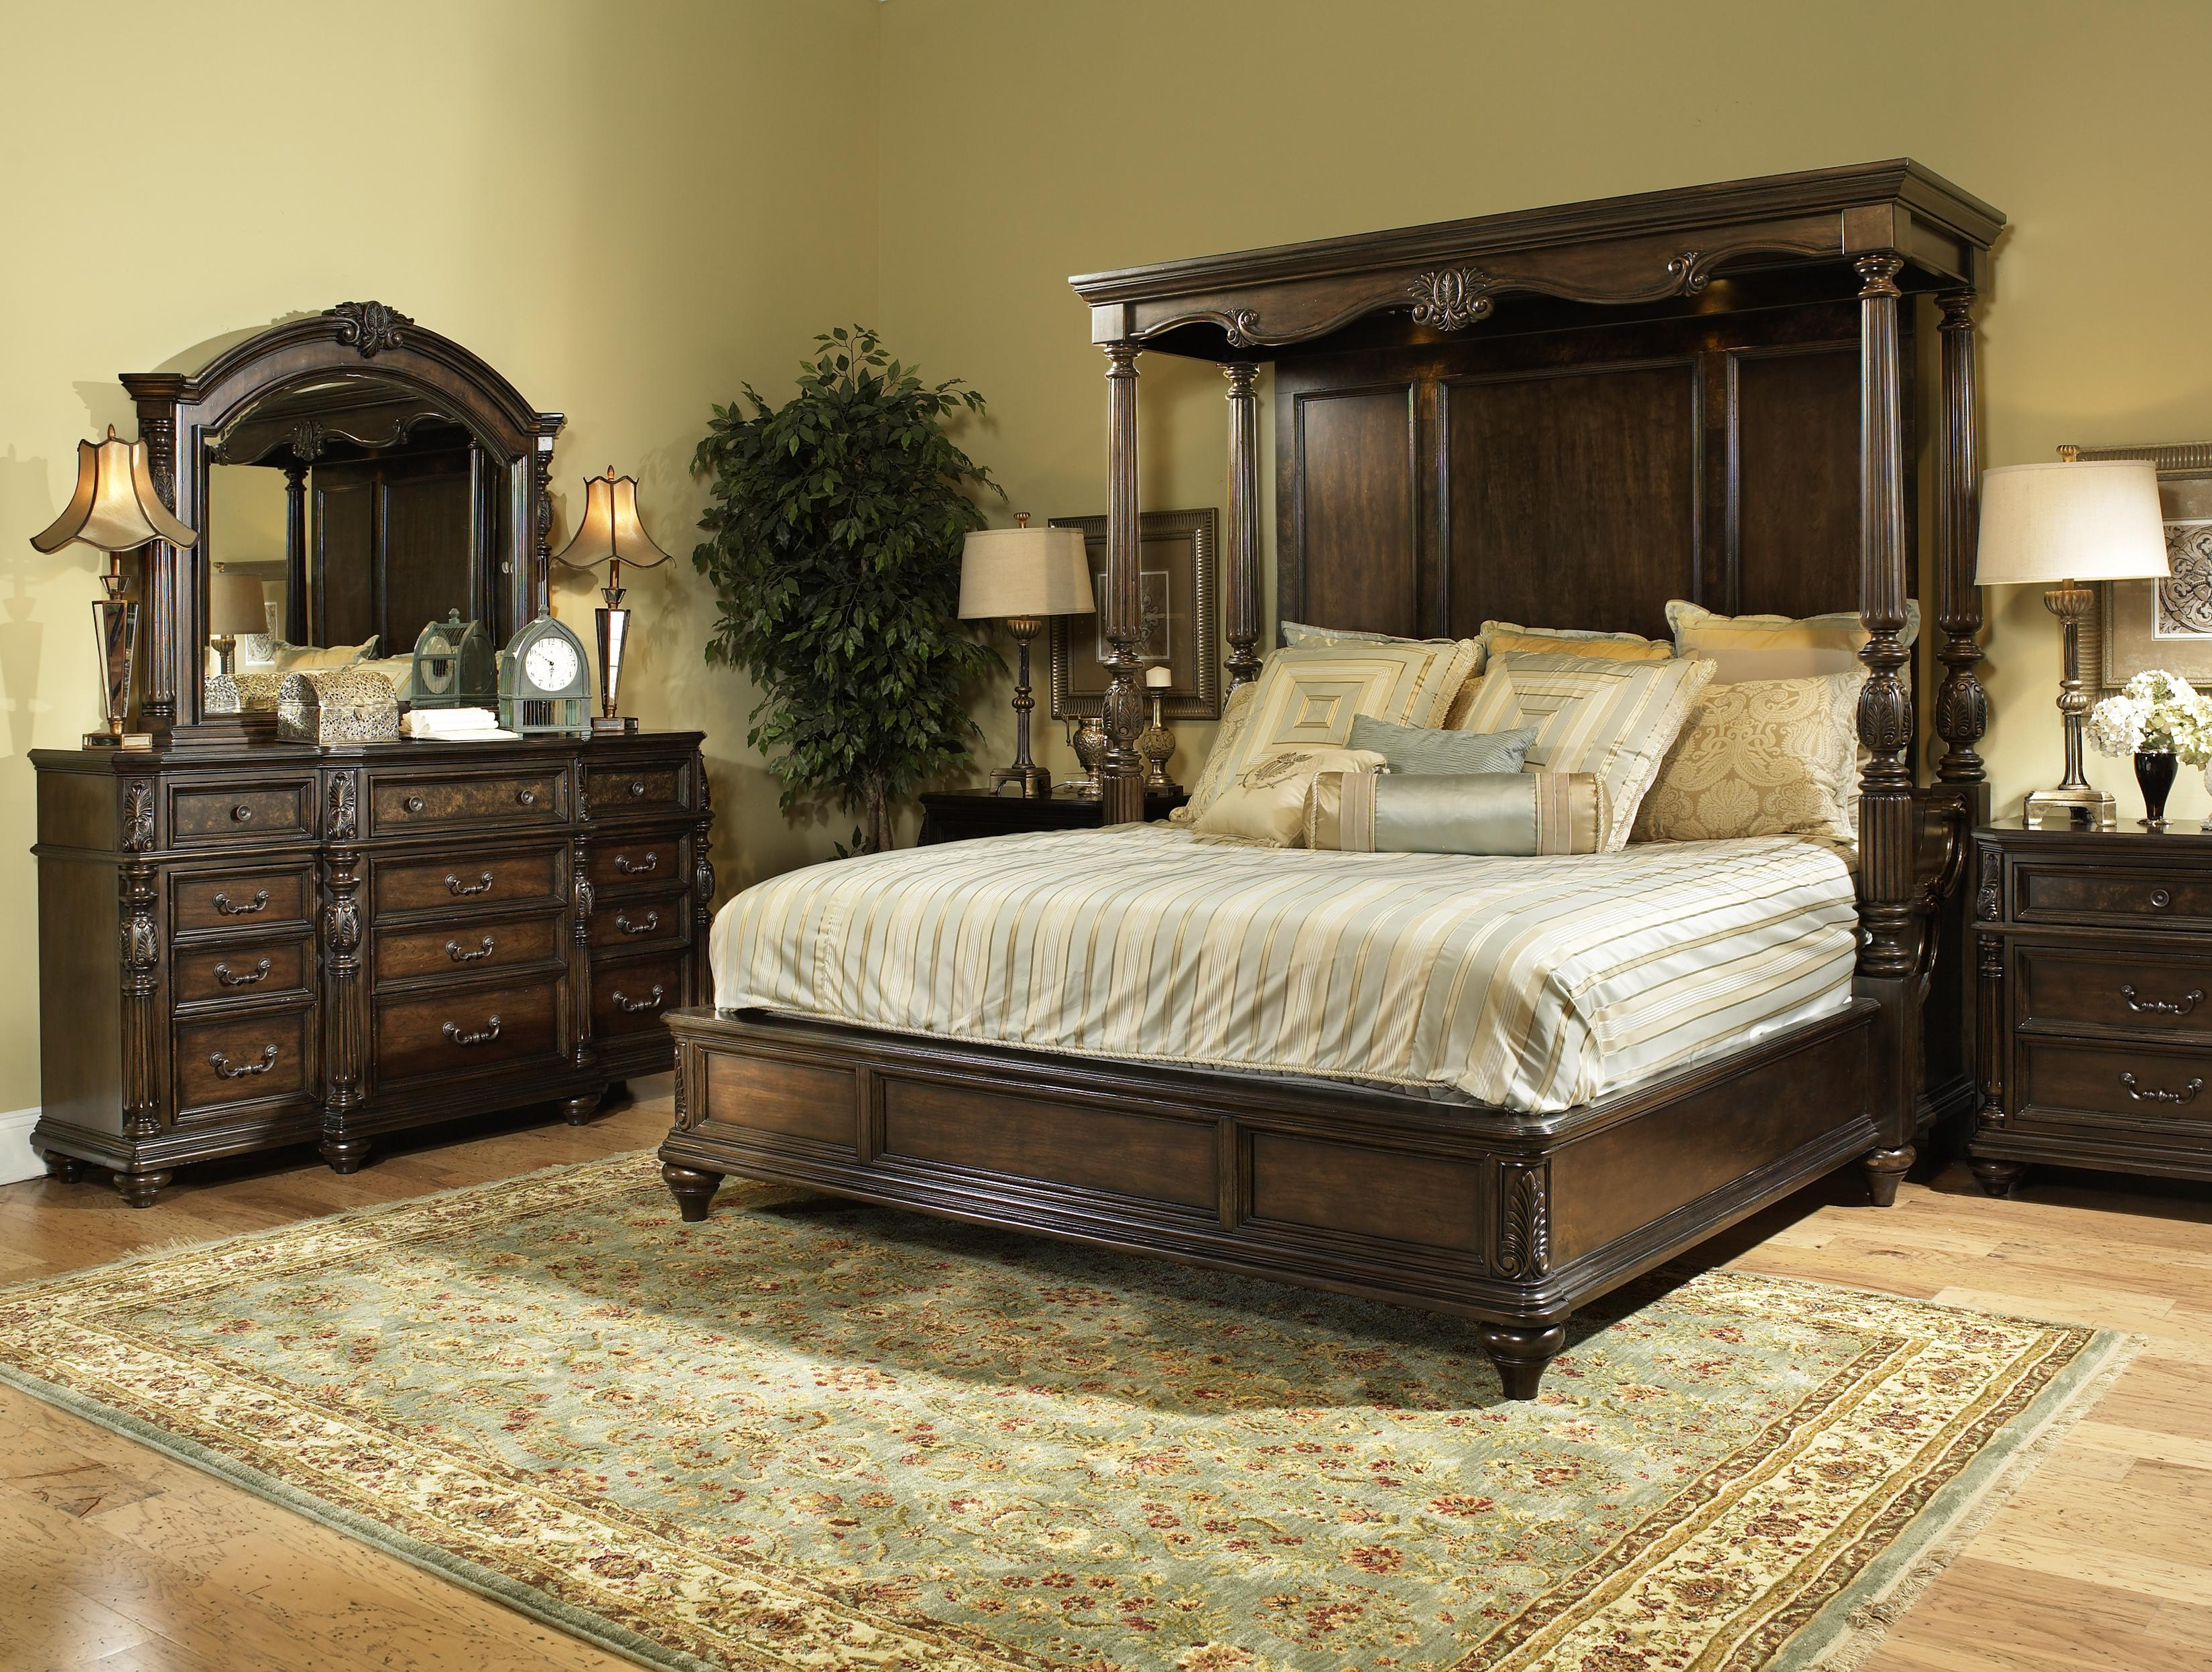 Image of: Canopy Bed Frame Wood